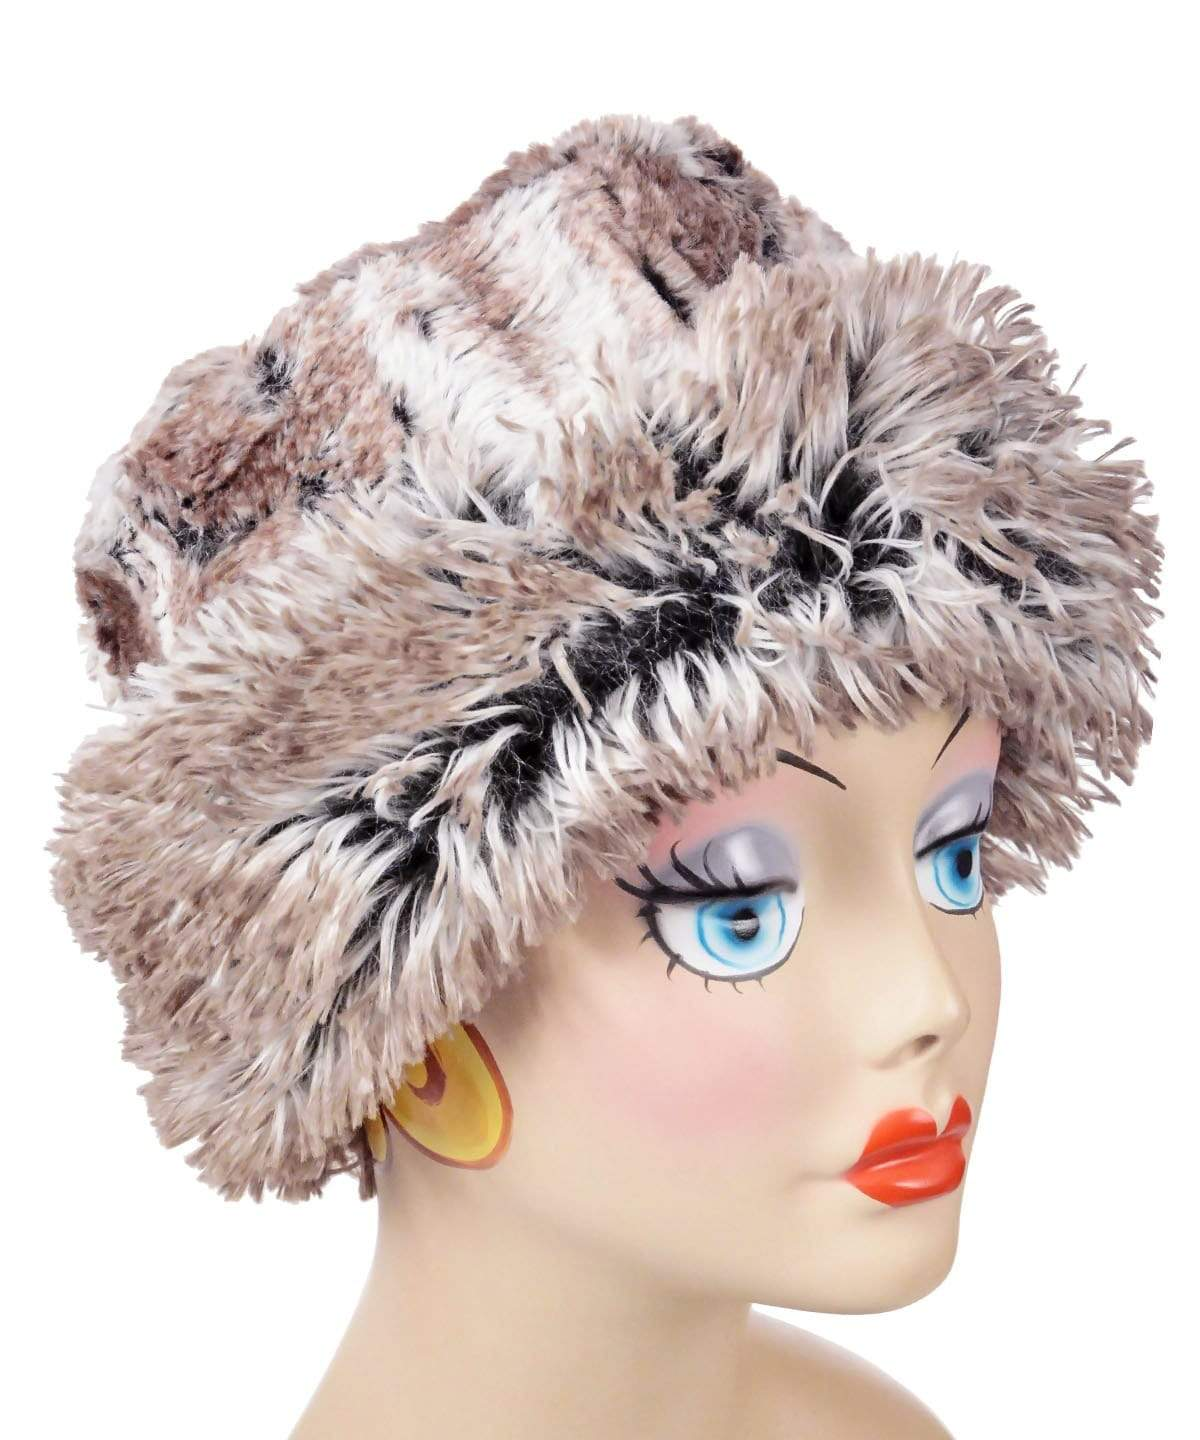 Cuffed Pillbox, Reversible (Solid or Two-Tone) - Luxury Faux Fur in Birch